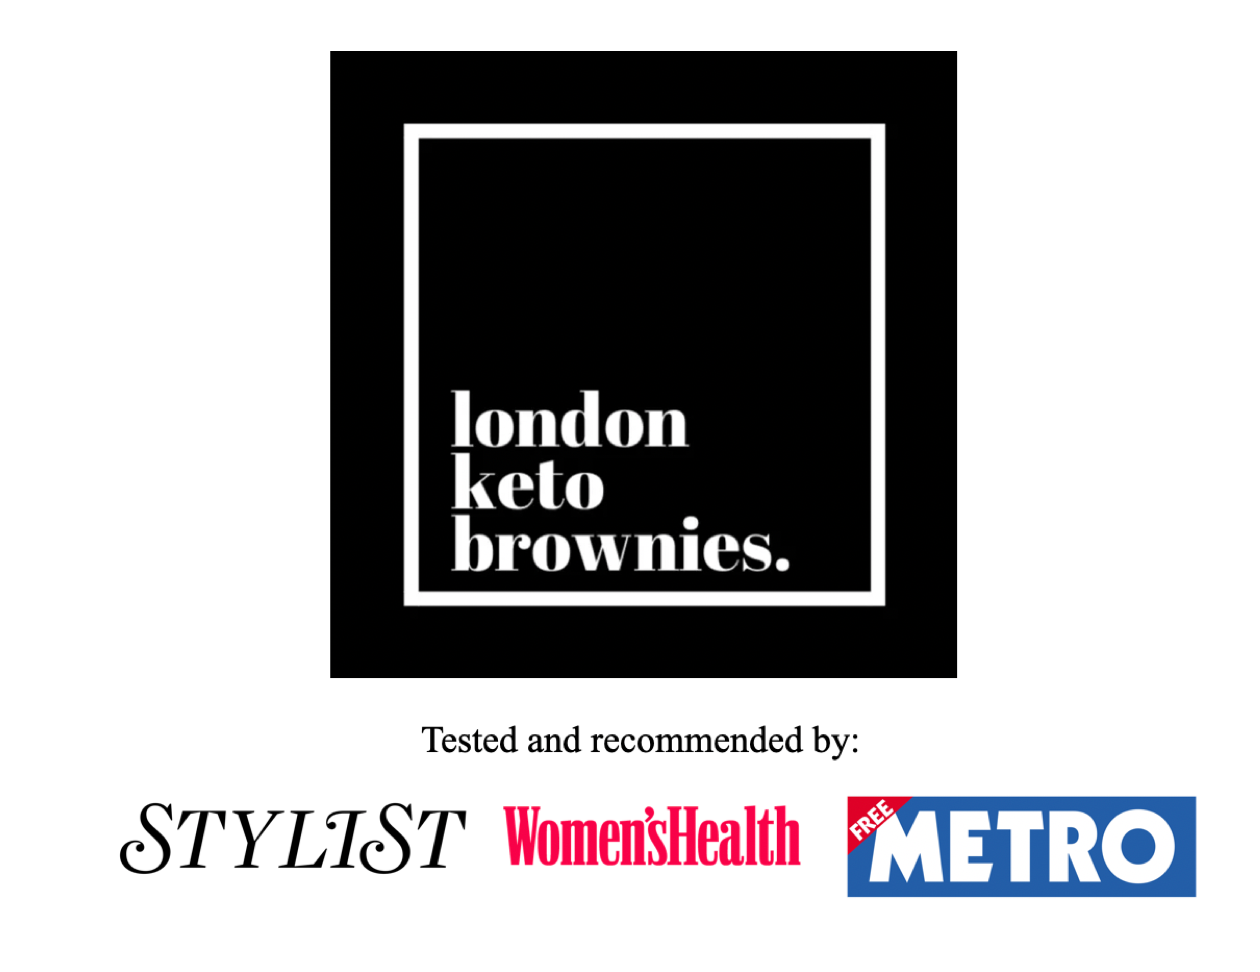 London Keto Brownies